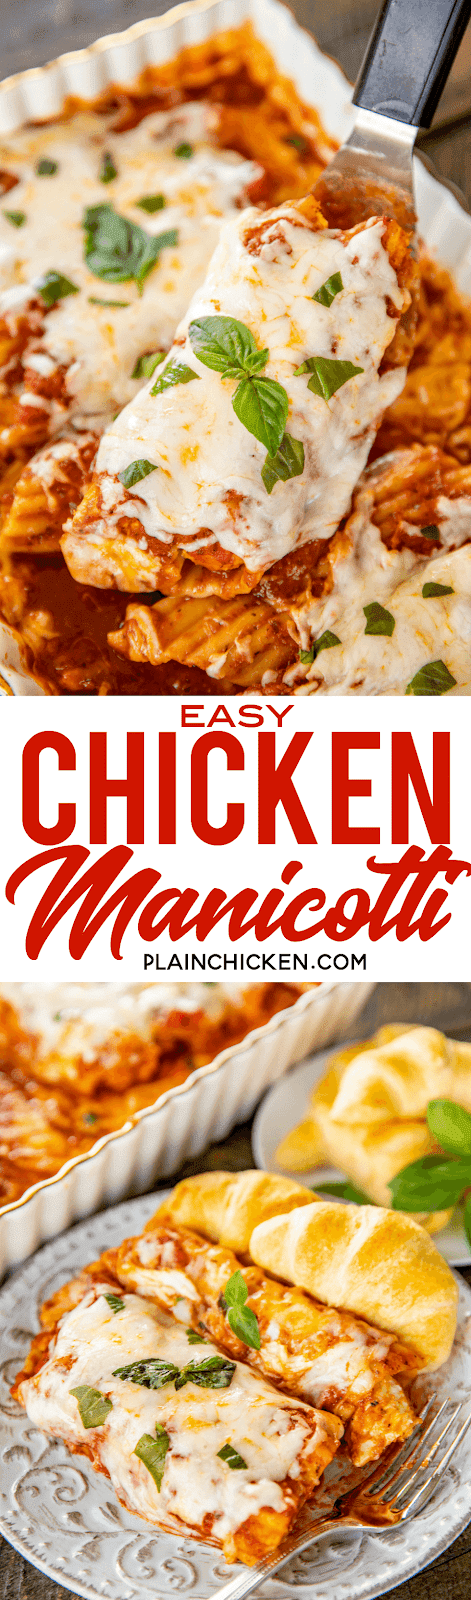 Easy Chicken Manicotti - so easy and seriously delicious! Everyone loved this easy pasta casserole and asked for seconds! YES! Manicotti noodles, chicken tenders, spaghetti sauce, water, garlic, Italian seasoning and mozzarella cheese. No need to boil the noodles or cook the chicken - it all bakes in the casserole dish. A family favorite! #pasta #casserole #manicotti #chickenrecipe